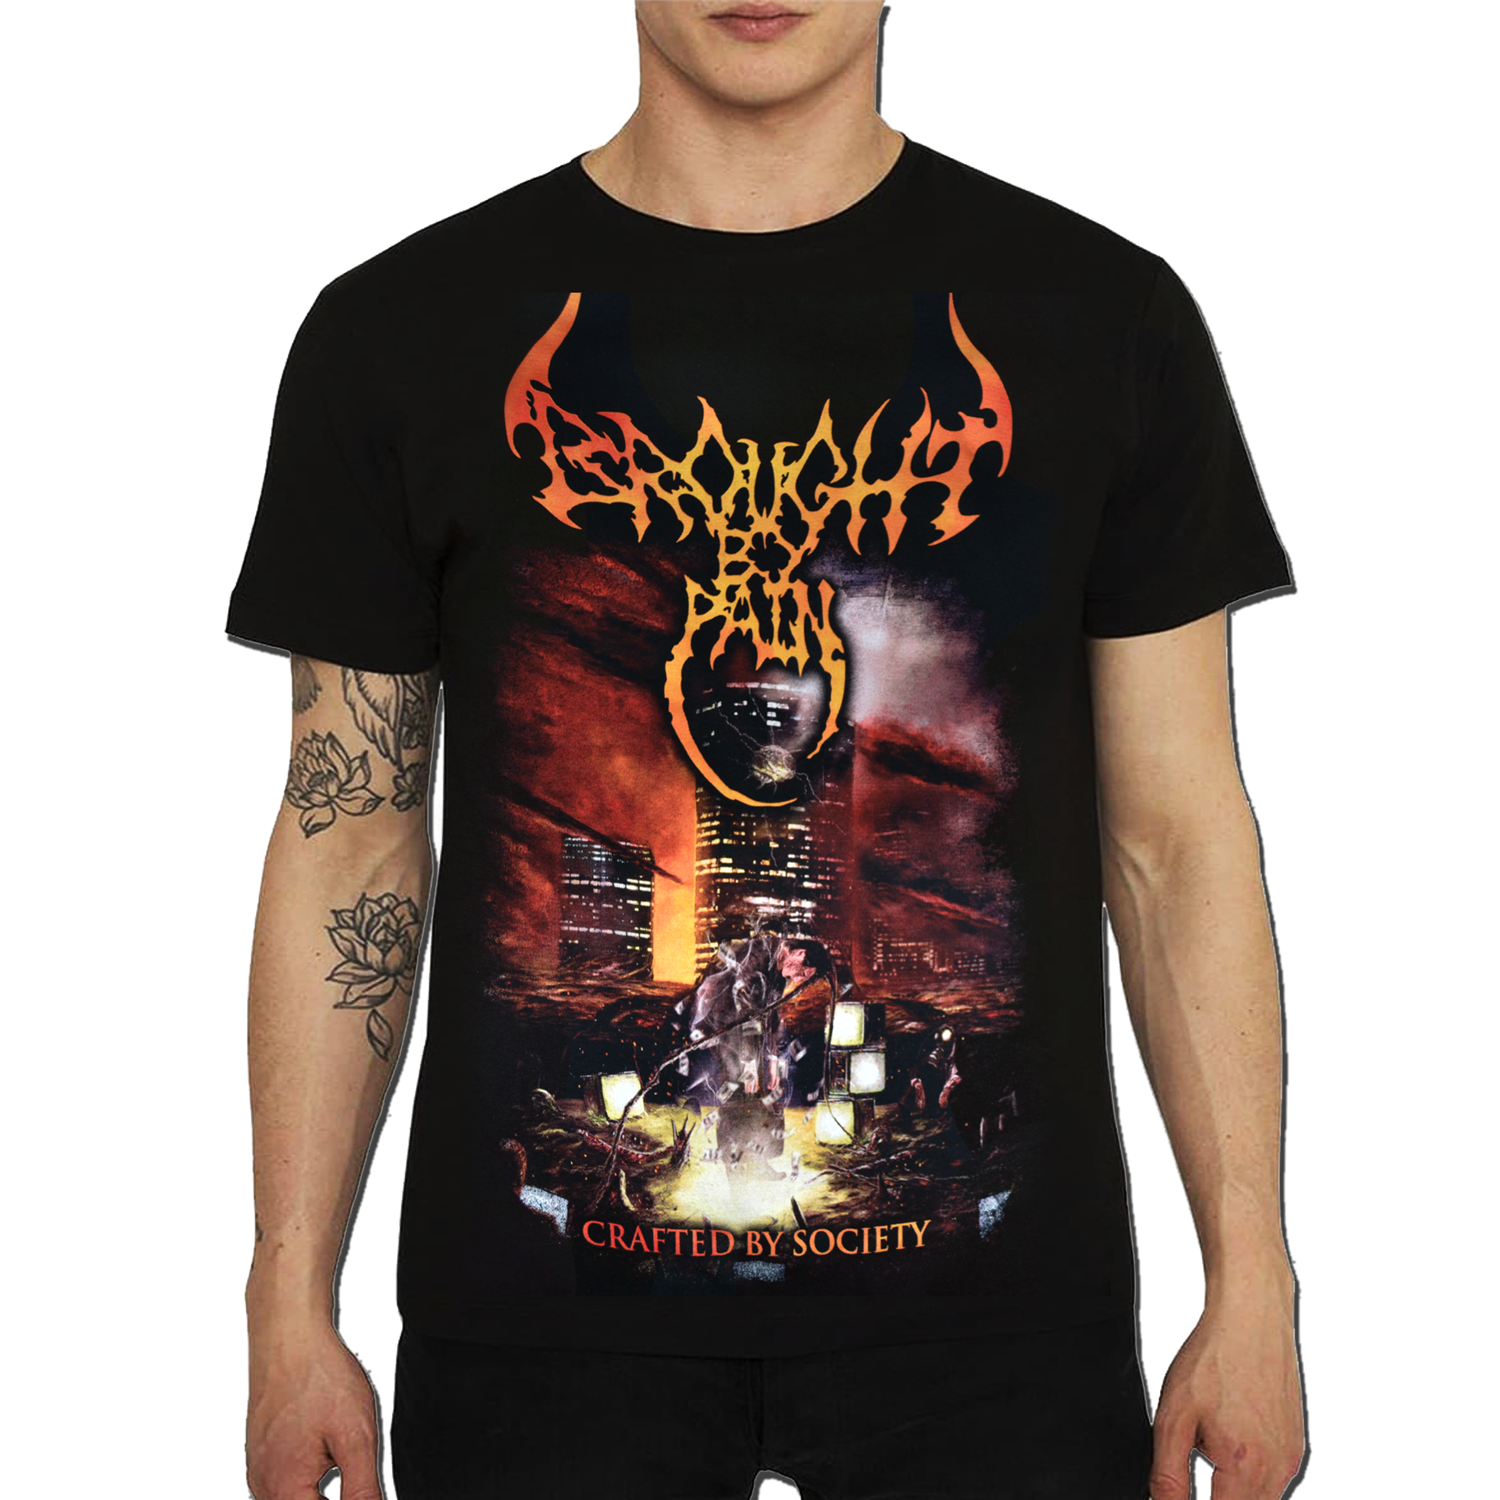 Crafted By Society T-Shirt